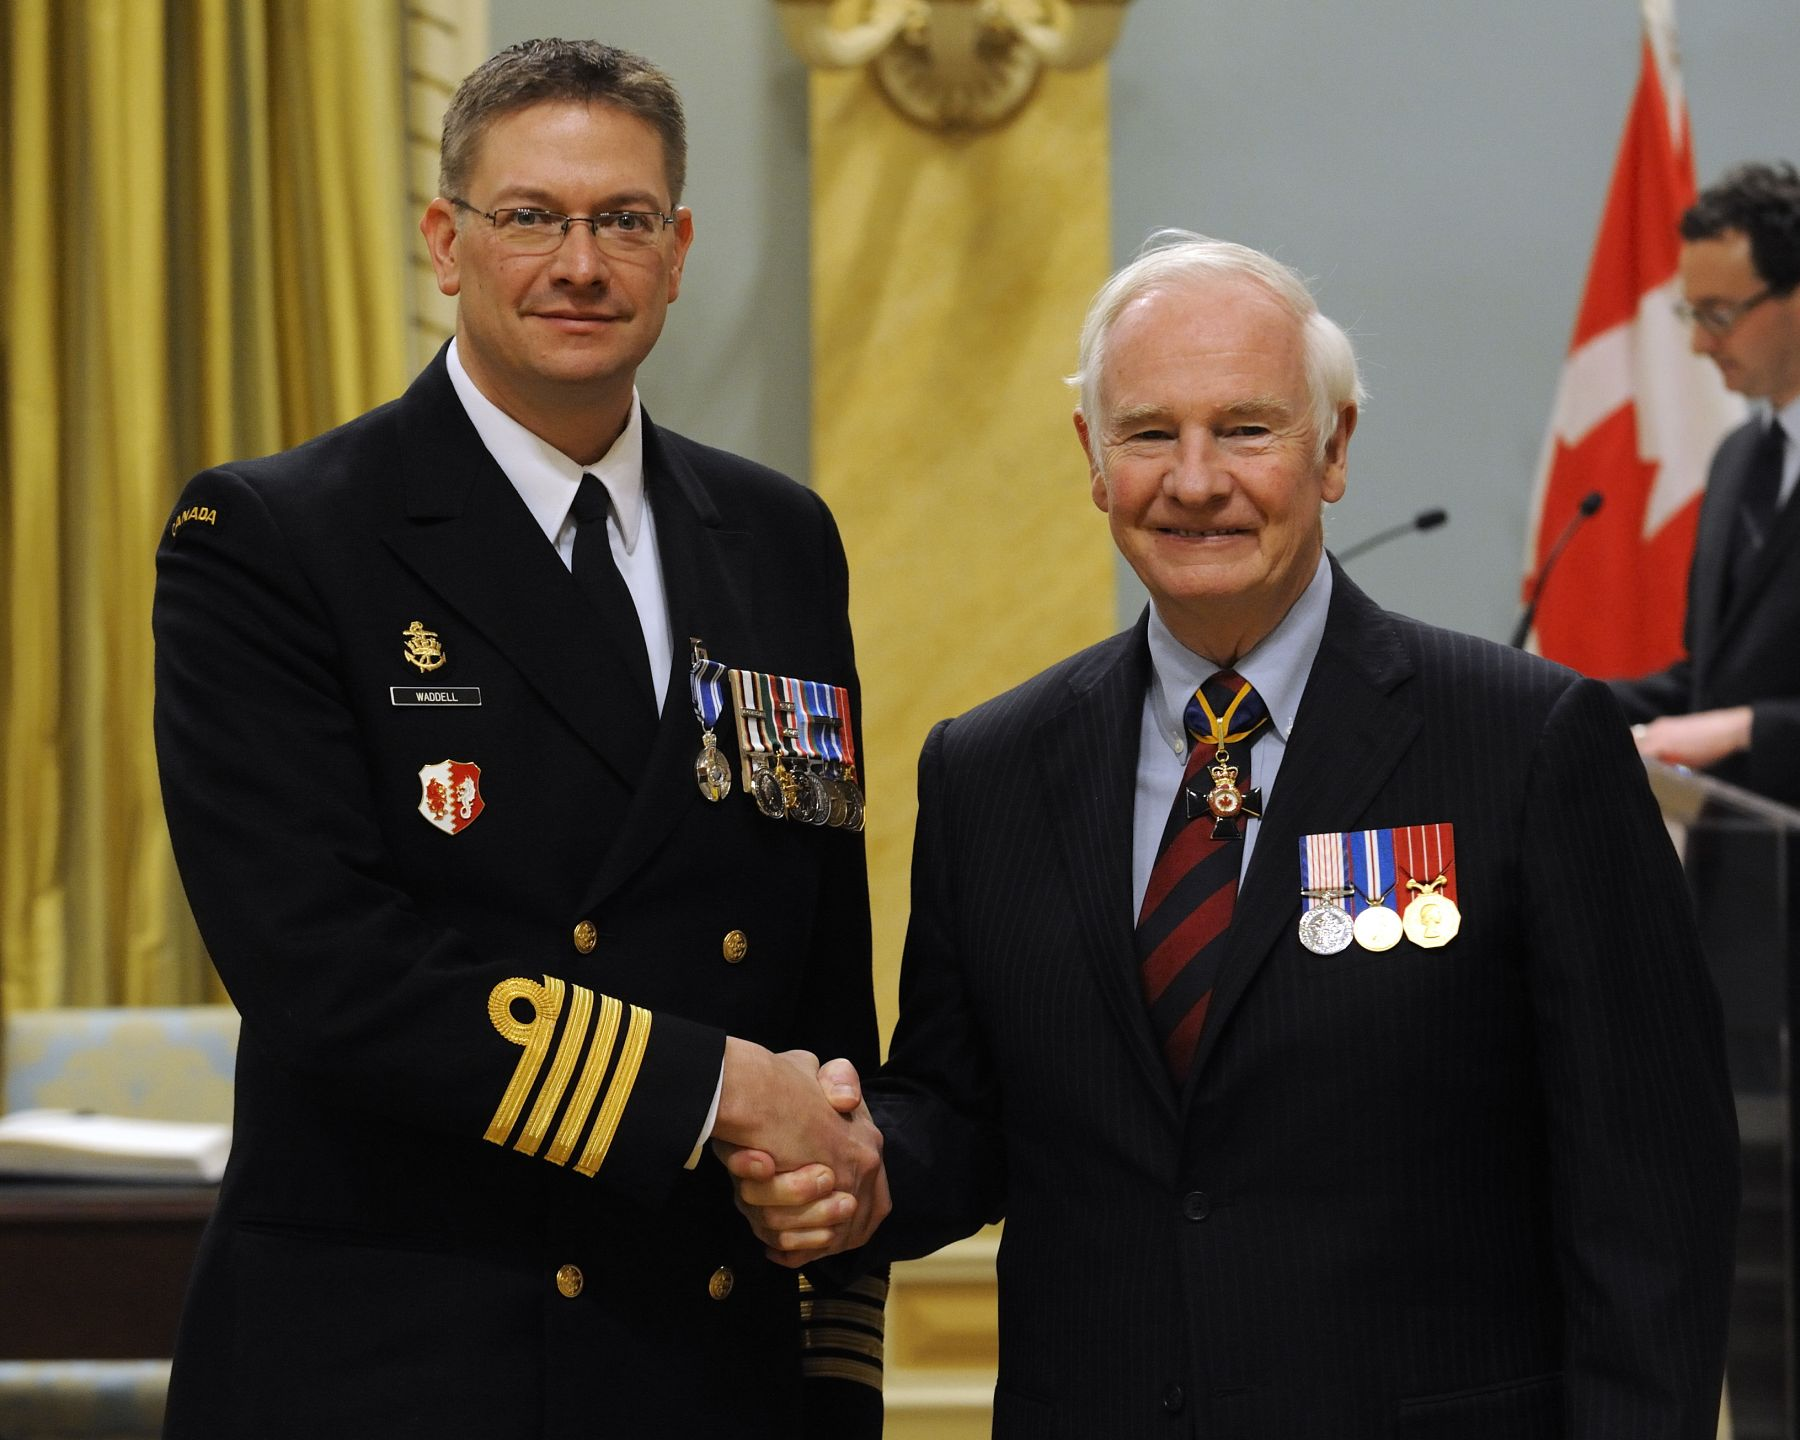 Commander Steven Michael Waddell, M.S.M., C.D., received the Meritorious Service Medal (Military Division) from His Excellency. Commander Waddell served with distinction from October 2009 to May 2010, commanding officer of Her Majesty's Canadian Ship Fredericton and commander of Task Force Saiph, deployed to the Gulf of Aden and the Arabian Sea in support of international counter-piracy and counter-terror efforts. Commander Waddell demonstrated tactical awareness, leadership, operational focus and a humanitarian approach to operations, allowing him to successfully lead his team through challenging missions, which brought great credit to the Royal Canadian Navy and to Canada.